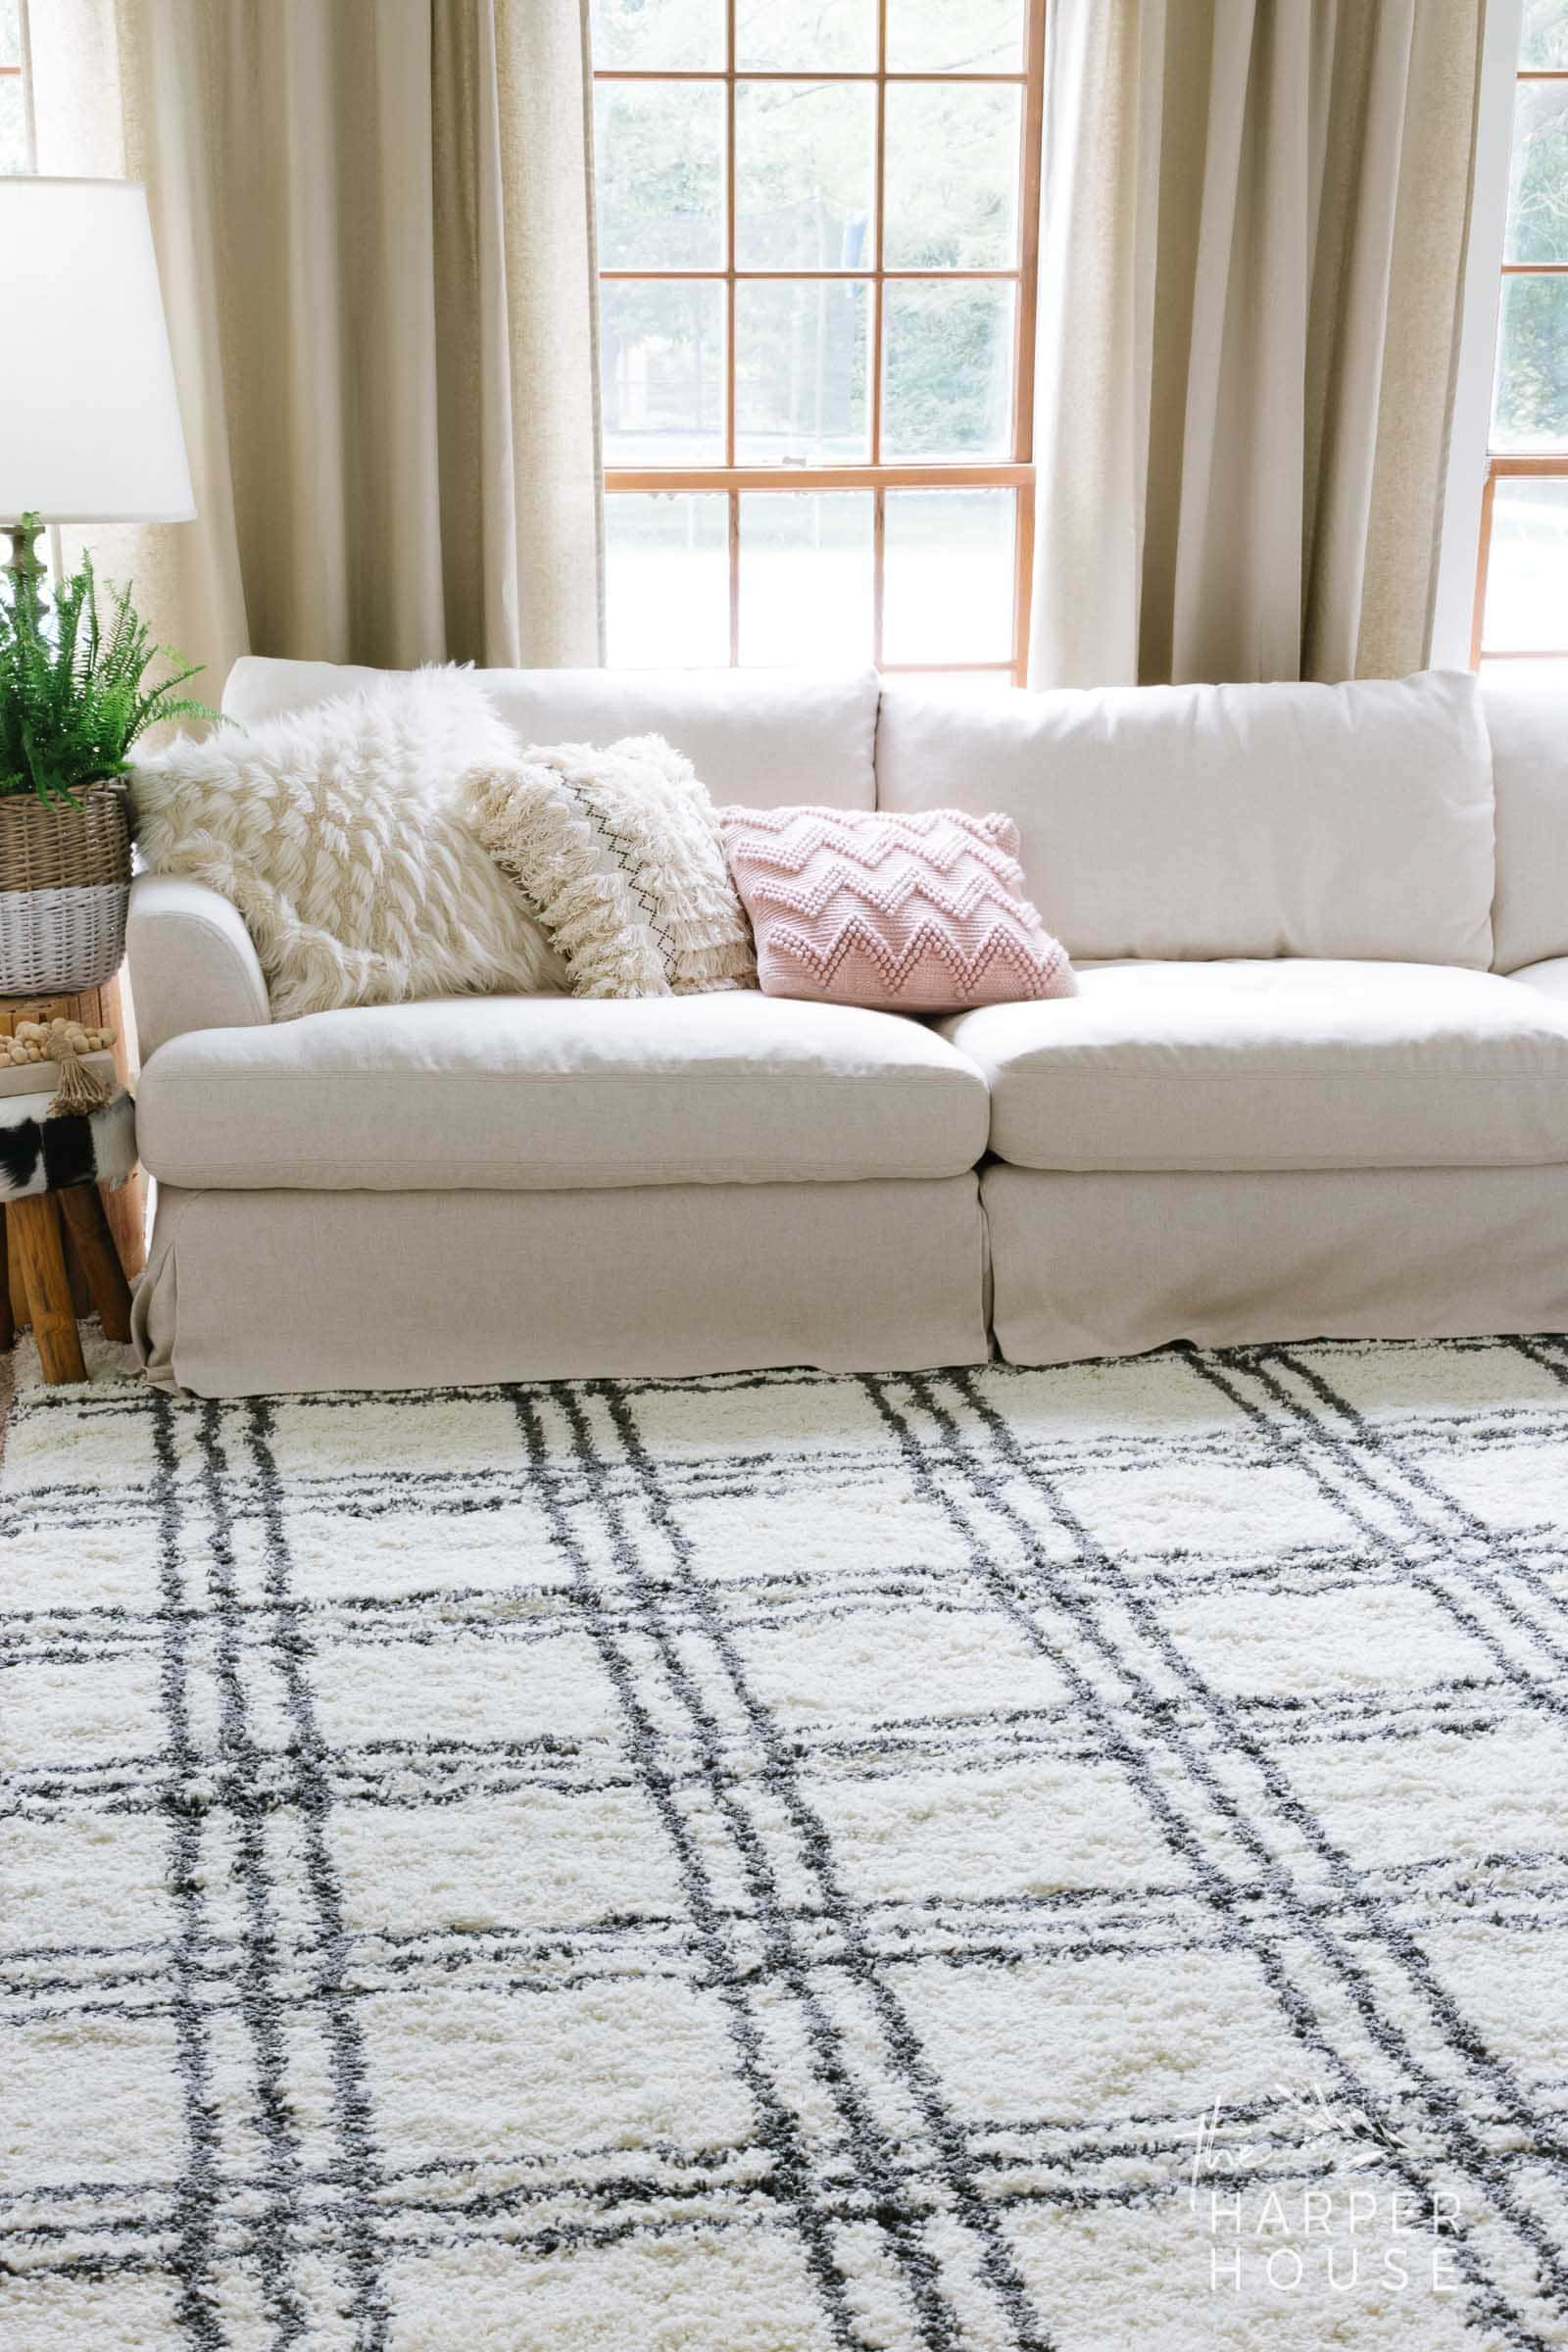 farmhouse rug in living room decorated for fall